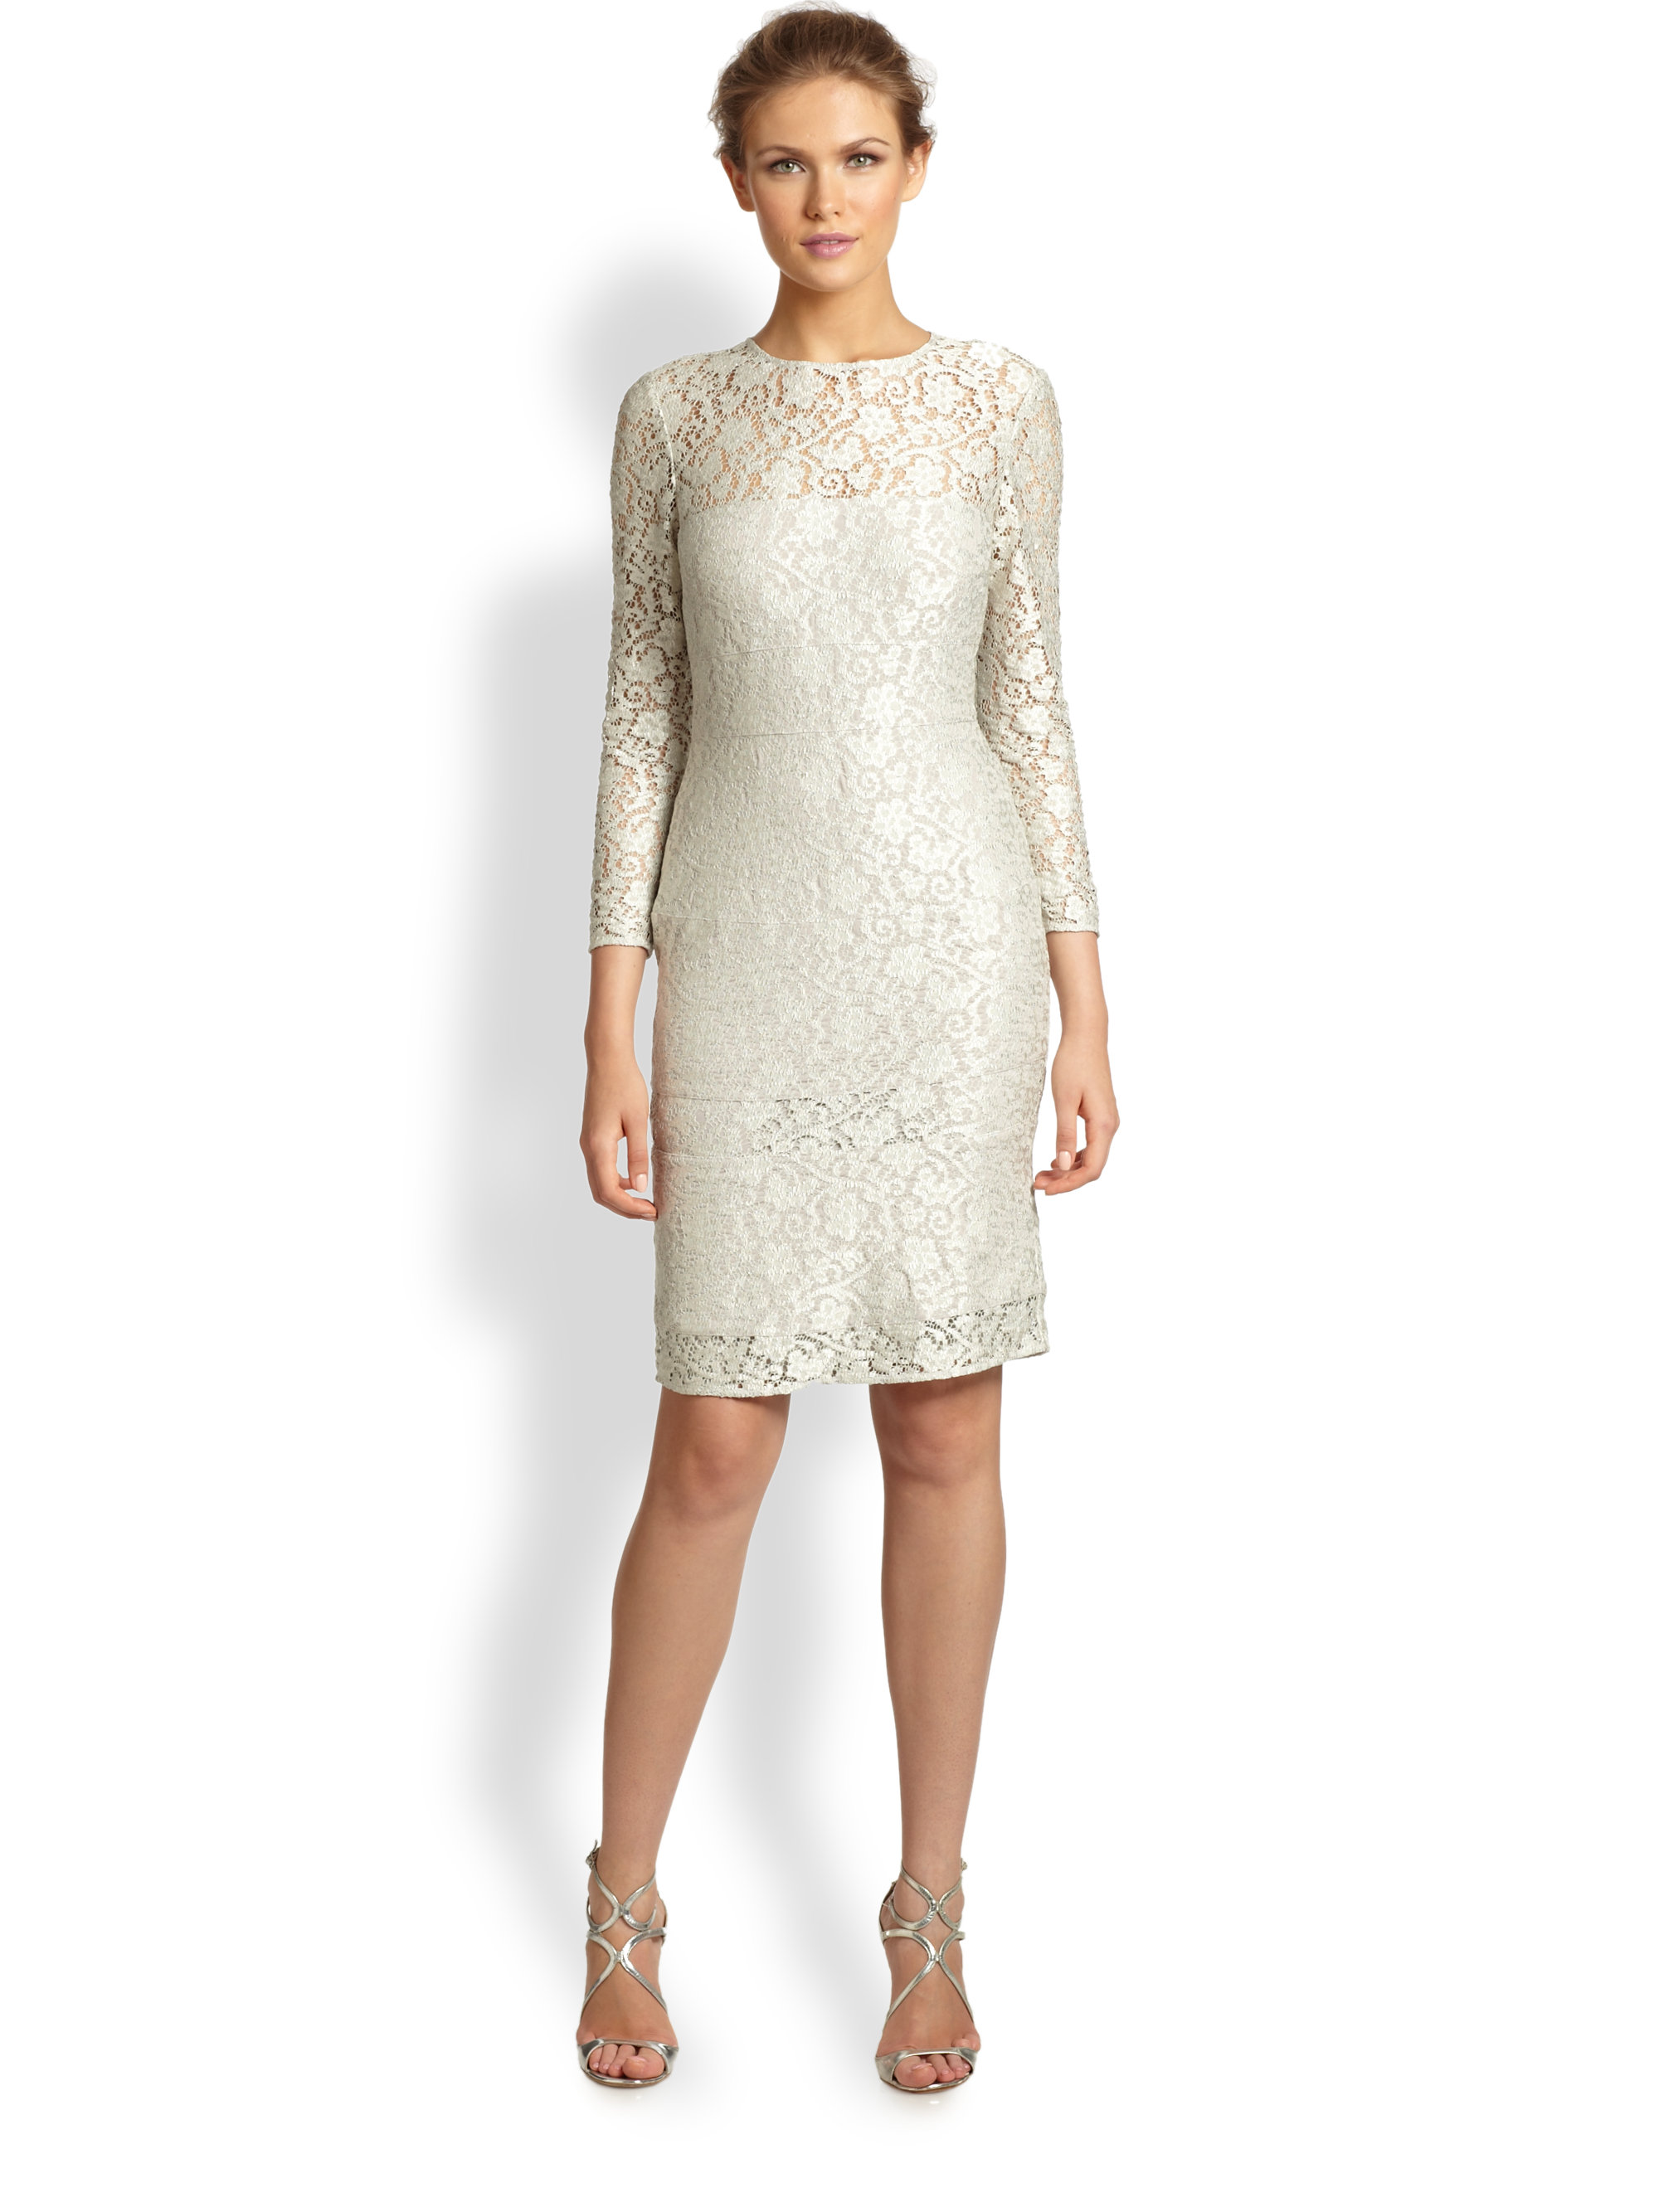 Kay unger Lace Cocktail Dress in Natural | Lyst